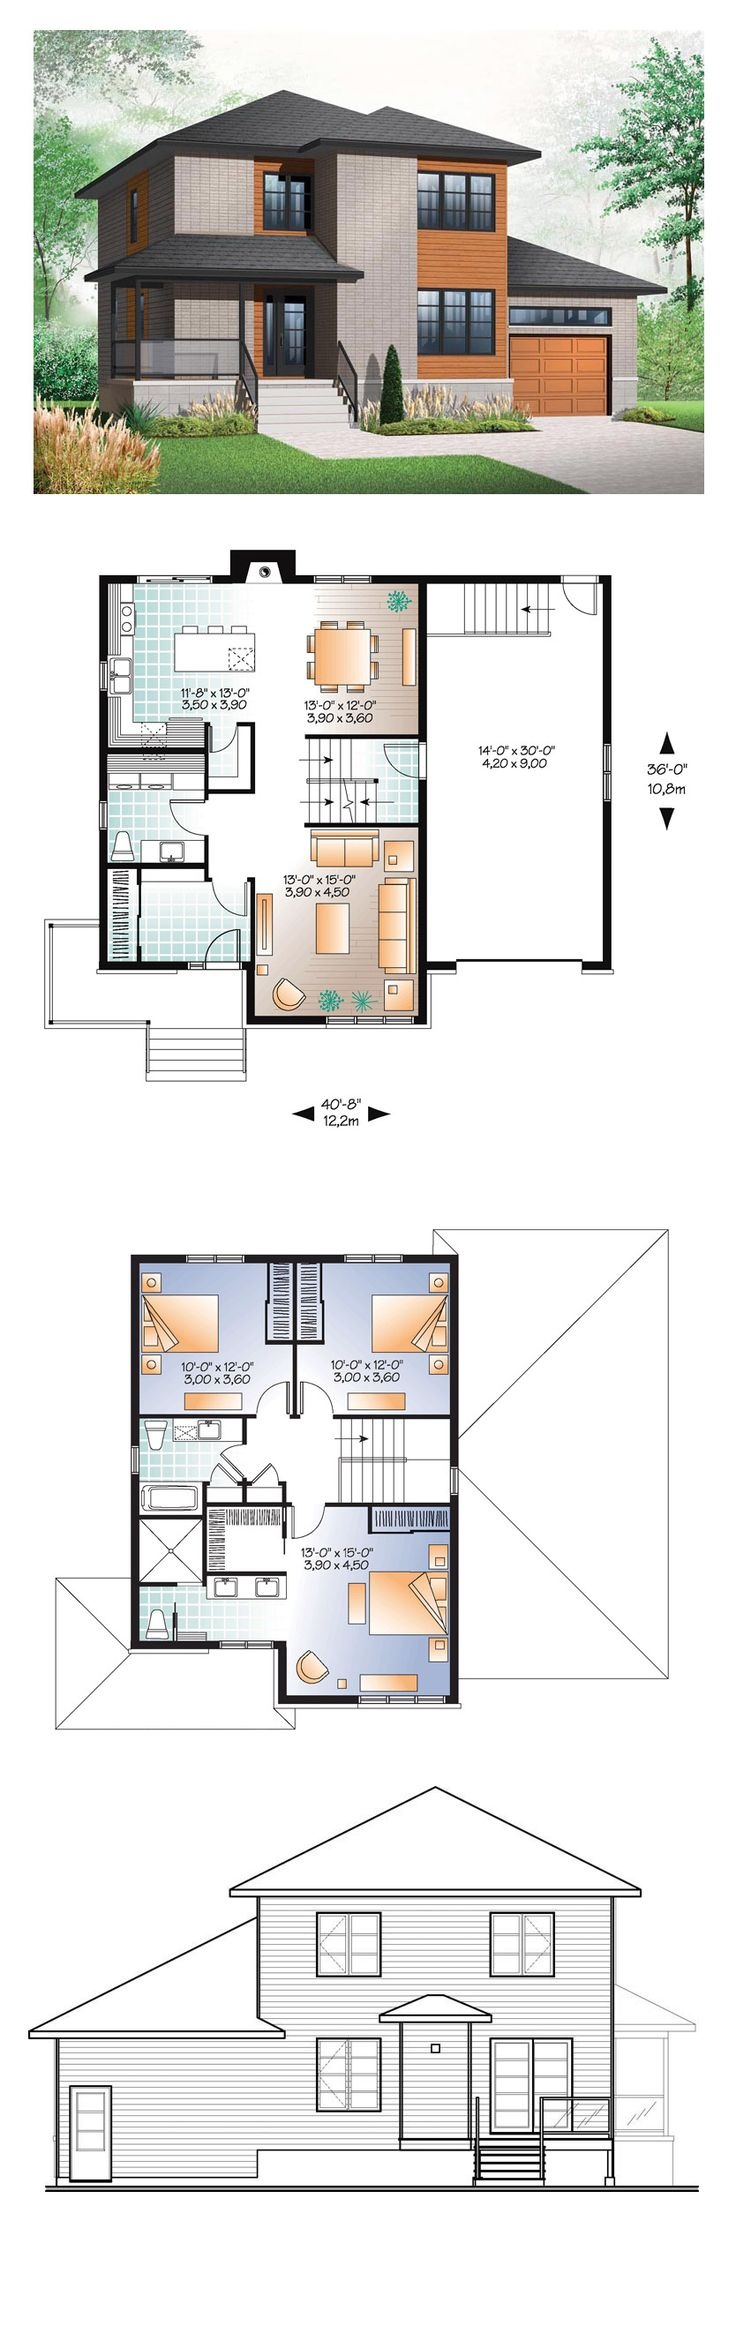 Modern House Plan 76324   Total Living Area: 1768 sq. ft., 3 bedrooms and 2.5 bathrooms. #modernhome